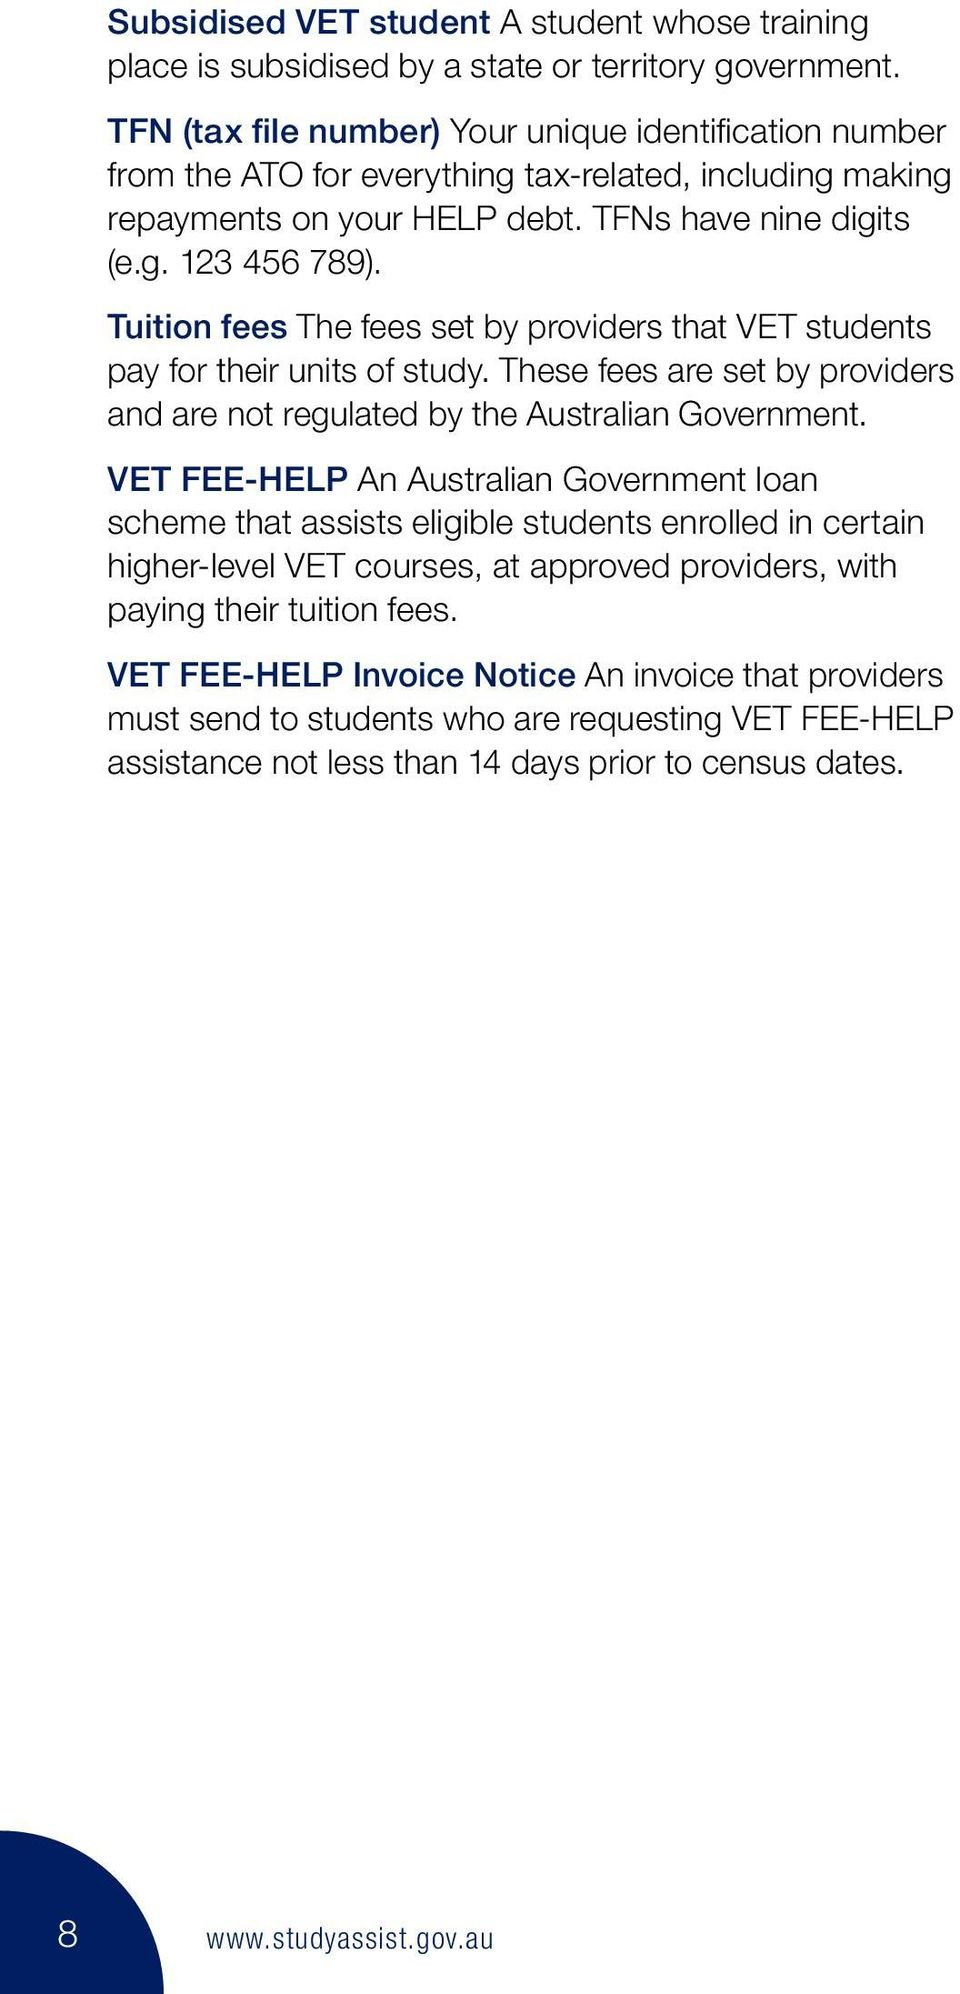 Tuition fees The fees set by providers that VET students pay for their units of study. These fees are set by providers and are not regulated by the Australian Government.